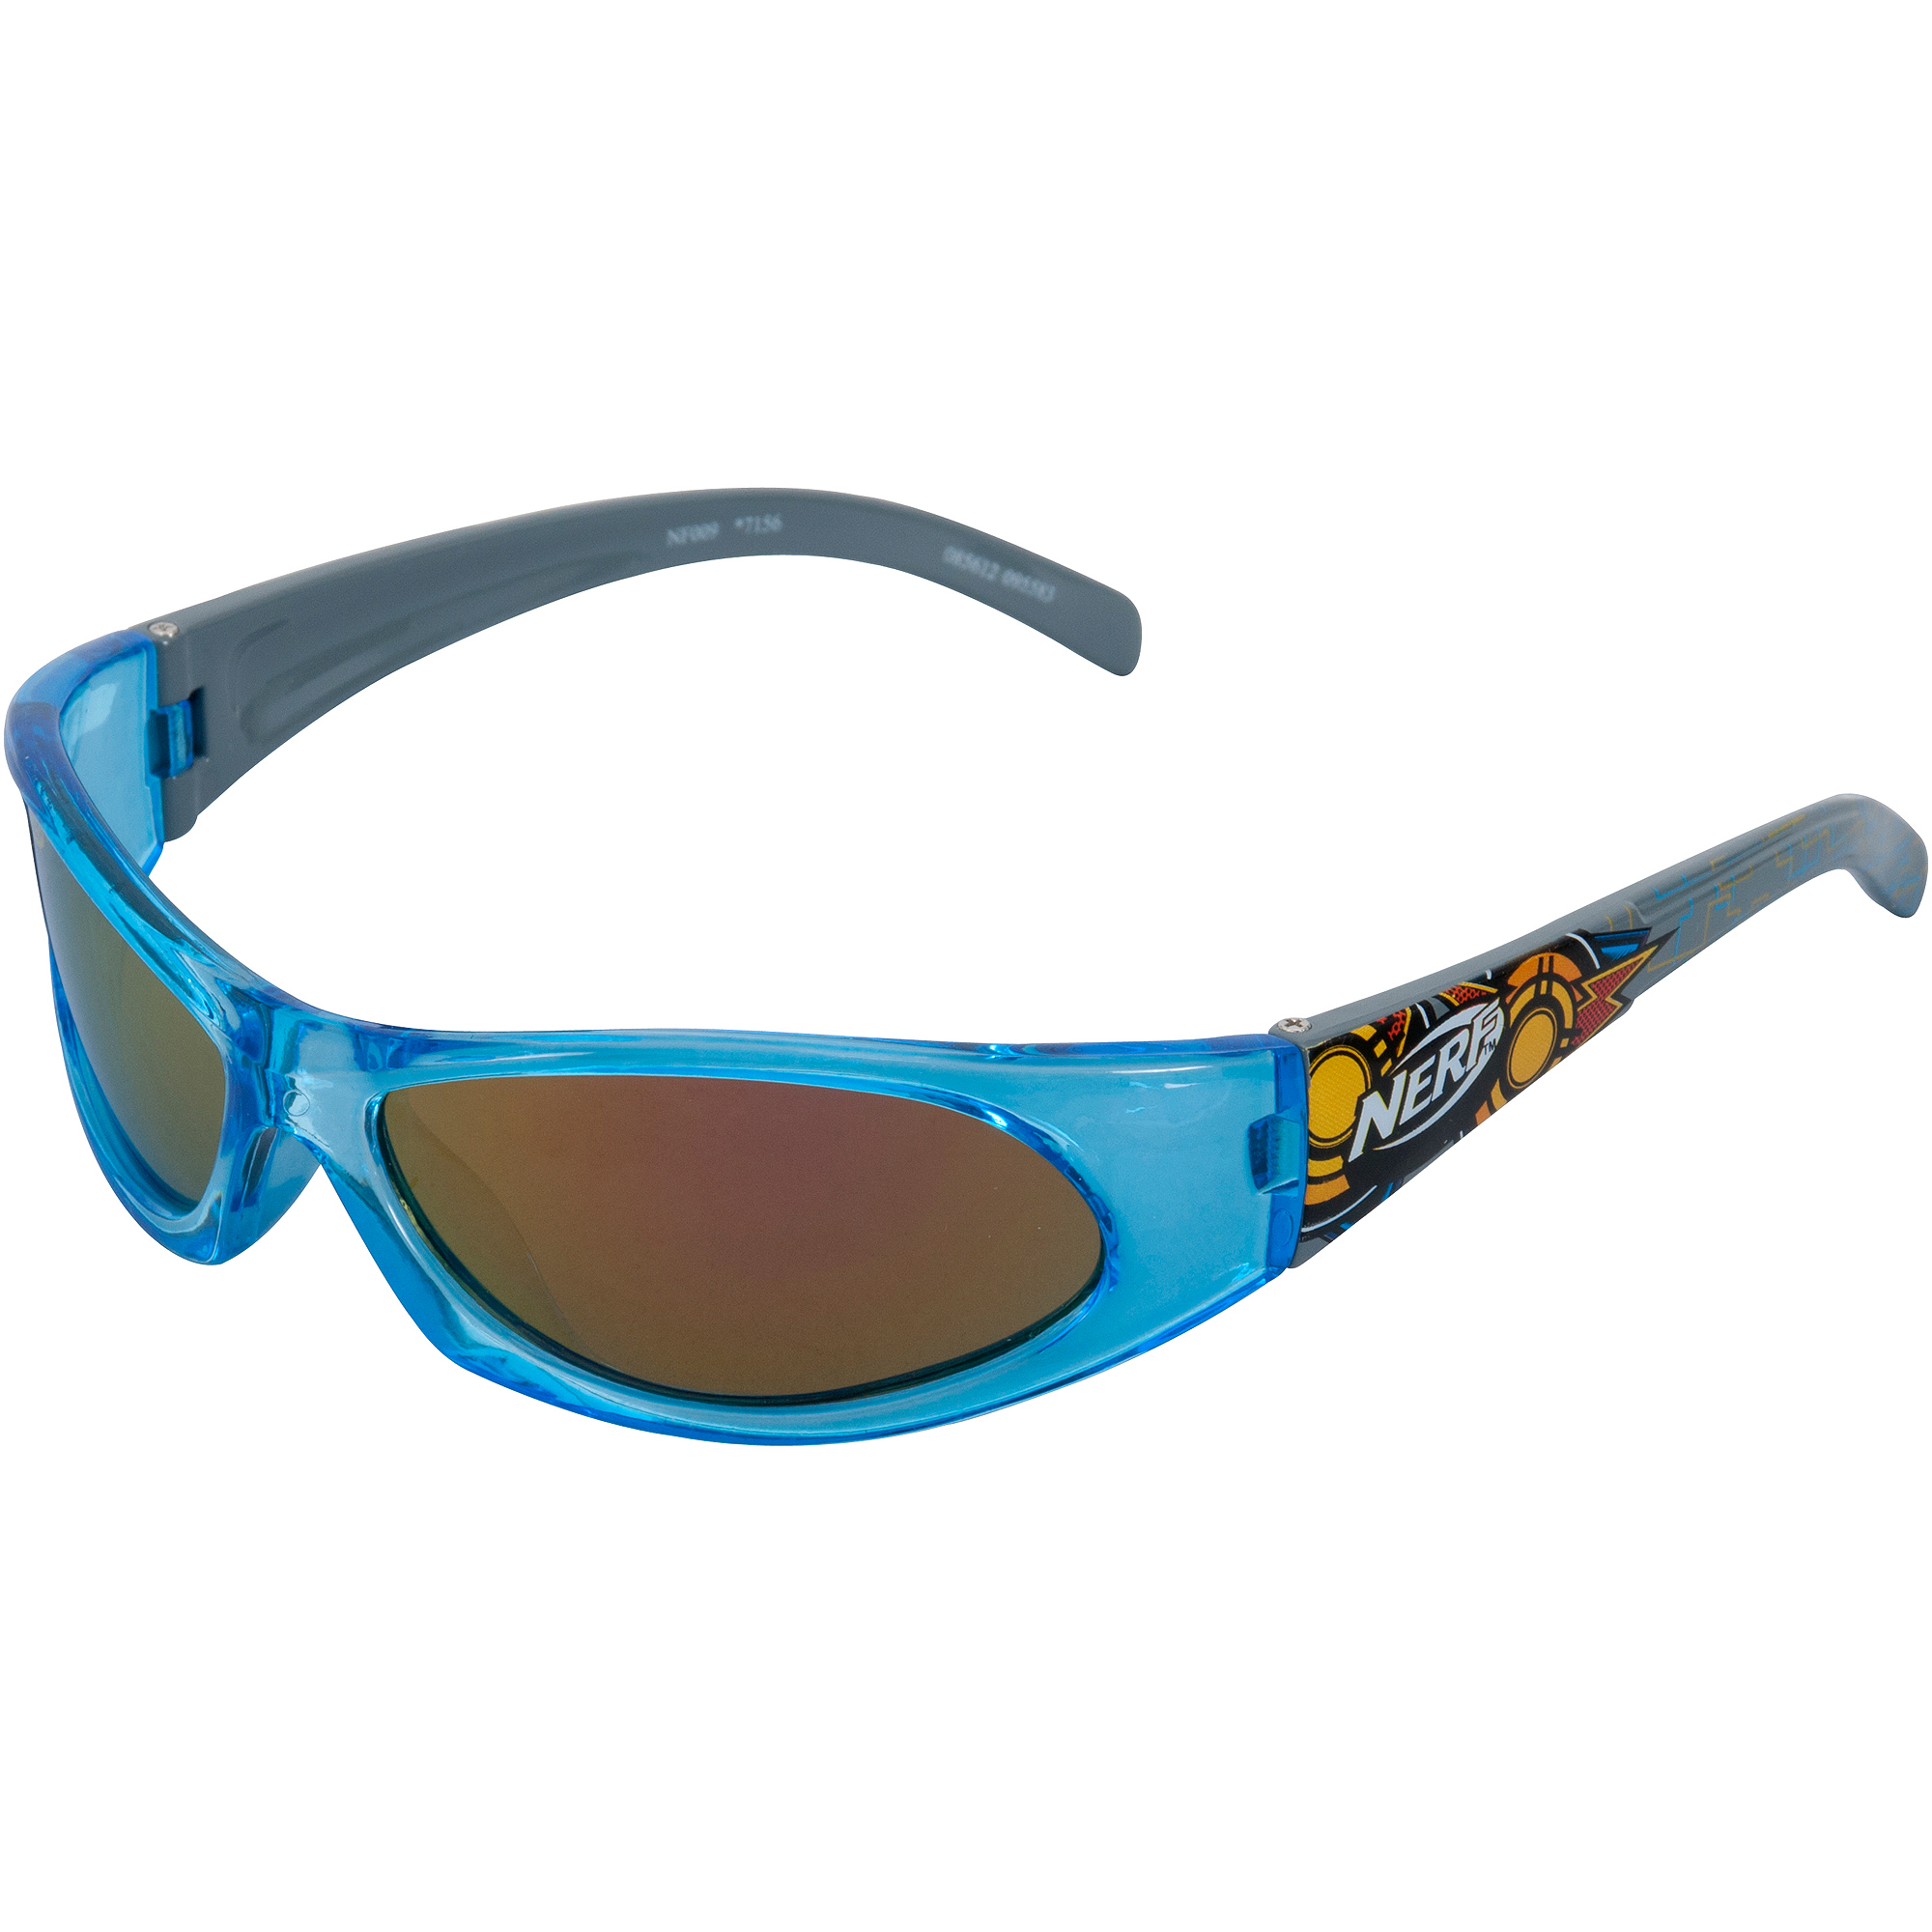 Nerf Childrens Sunglasses